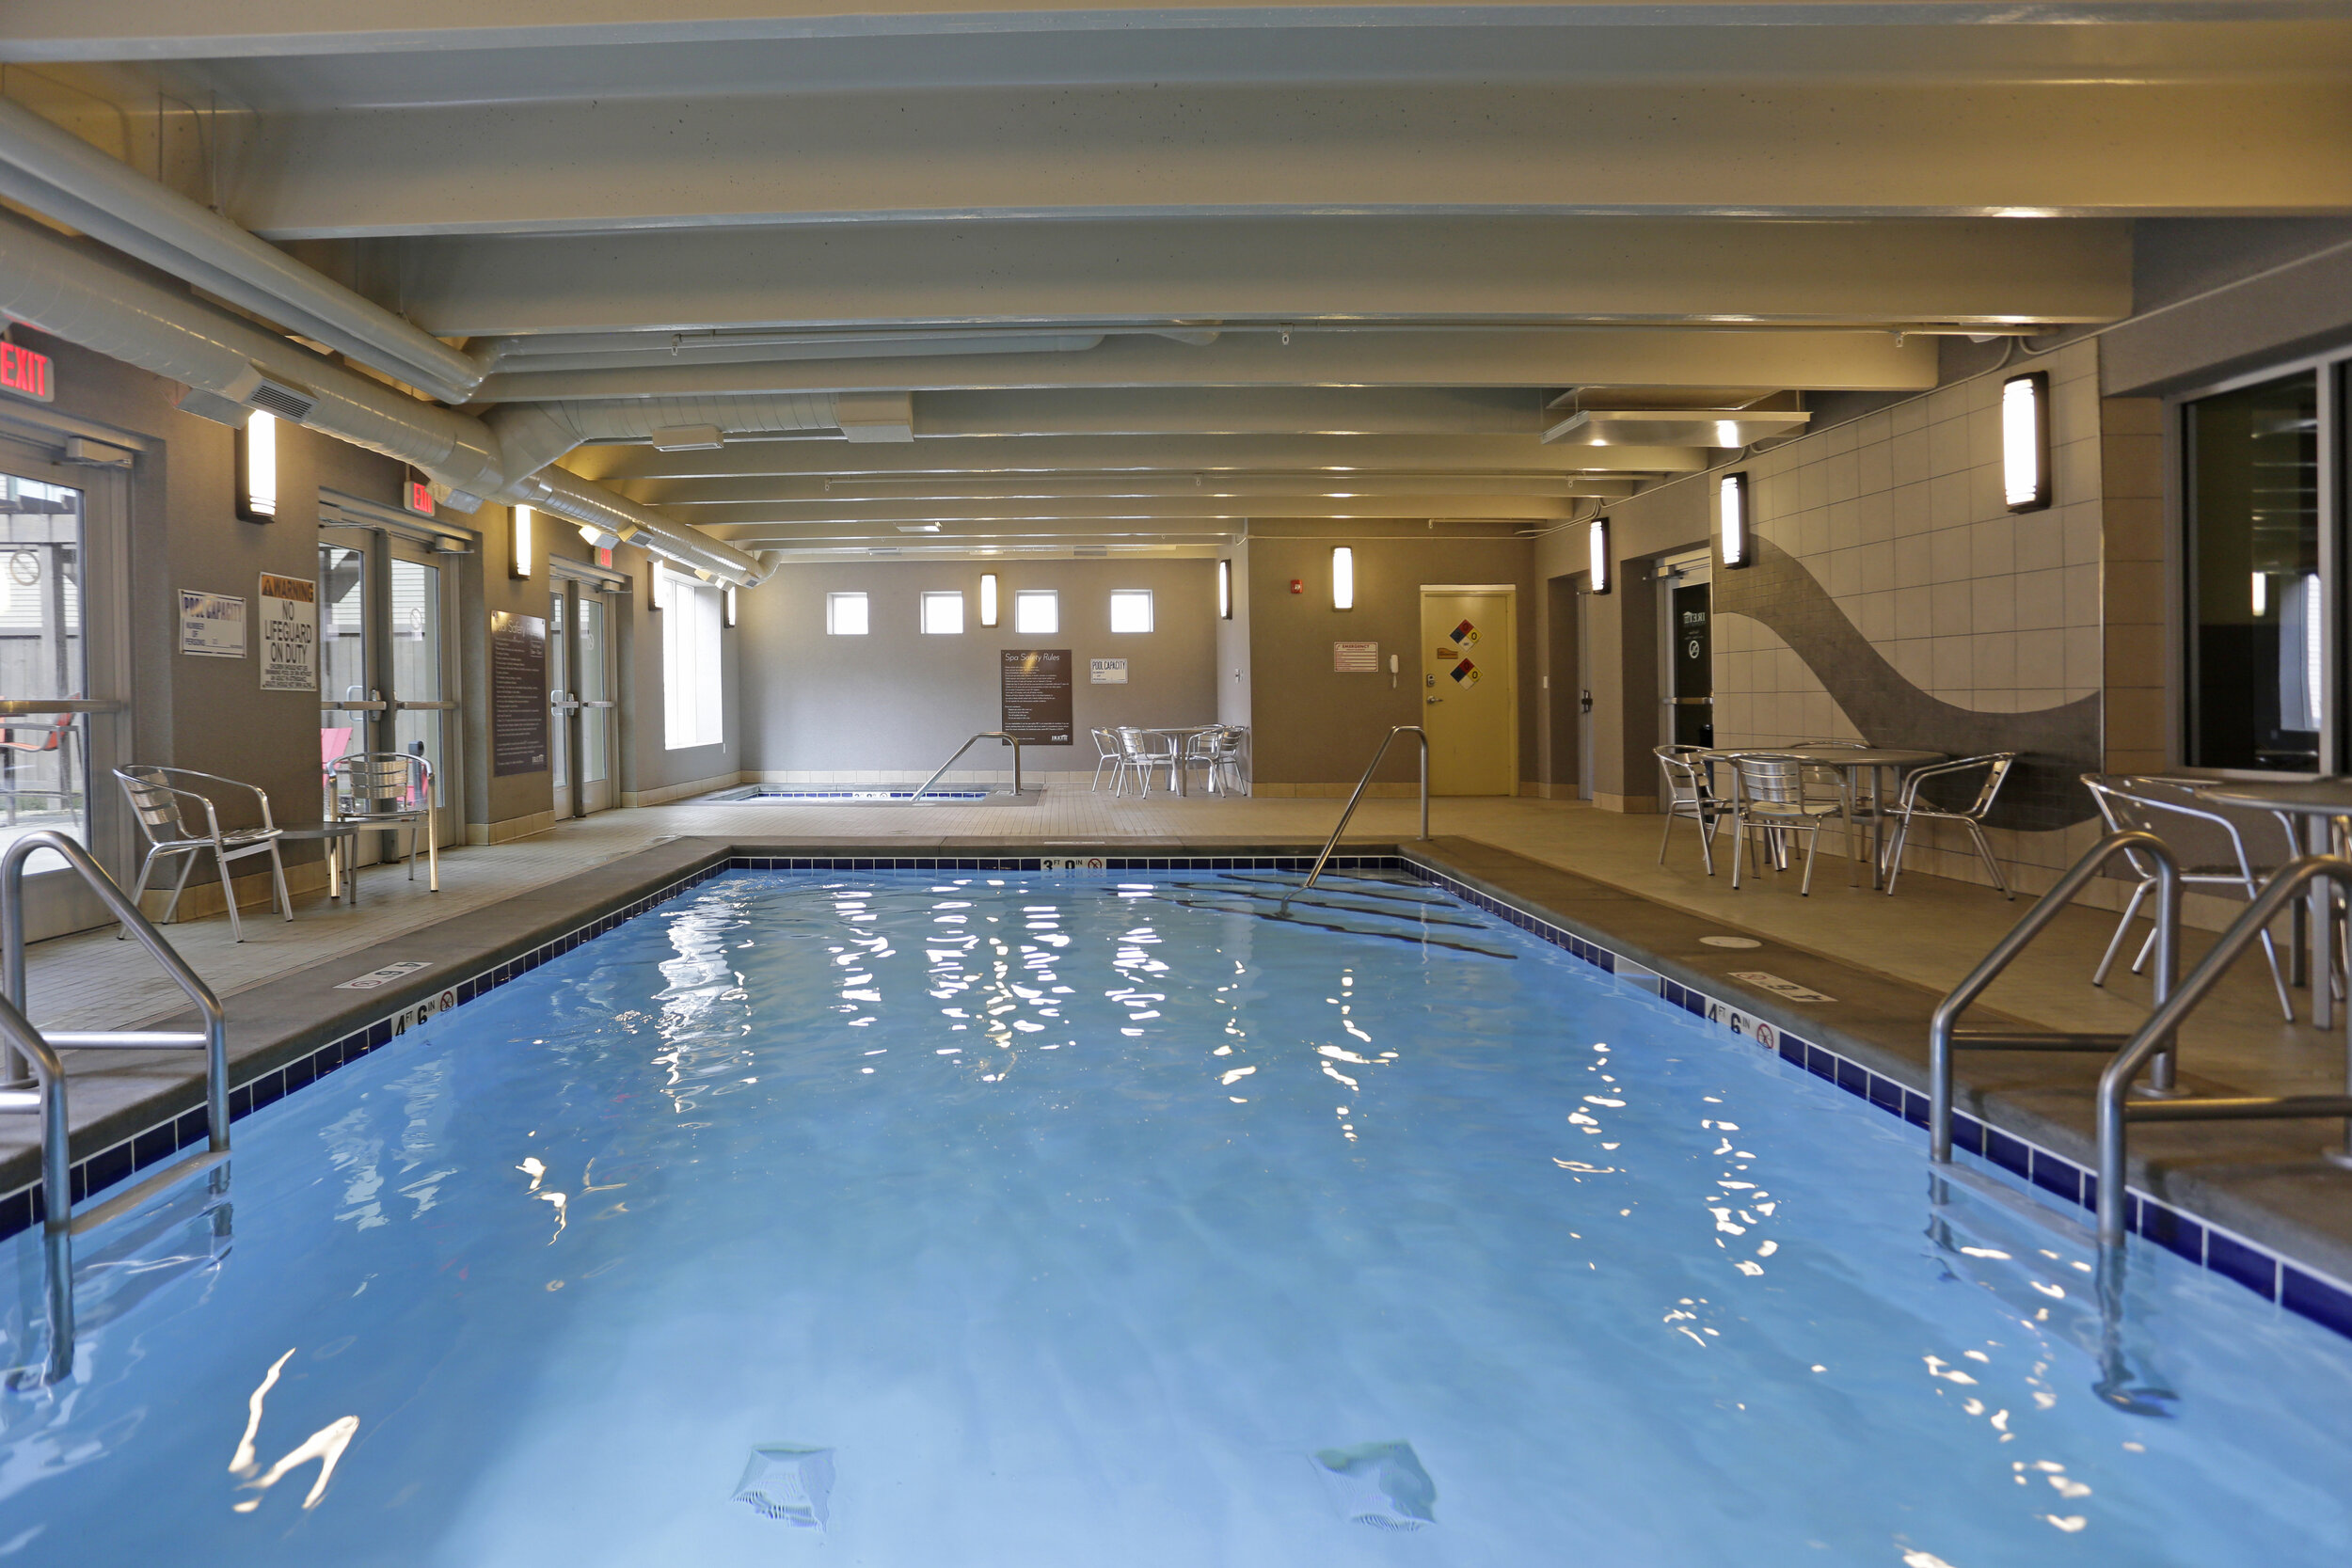 09 Year Round Accessible Indoor Pool.jpg